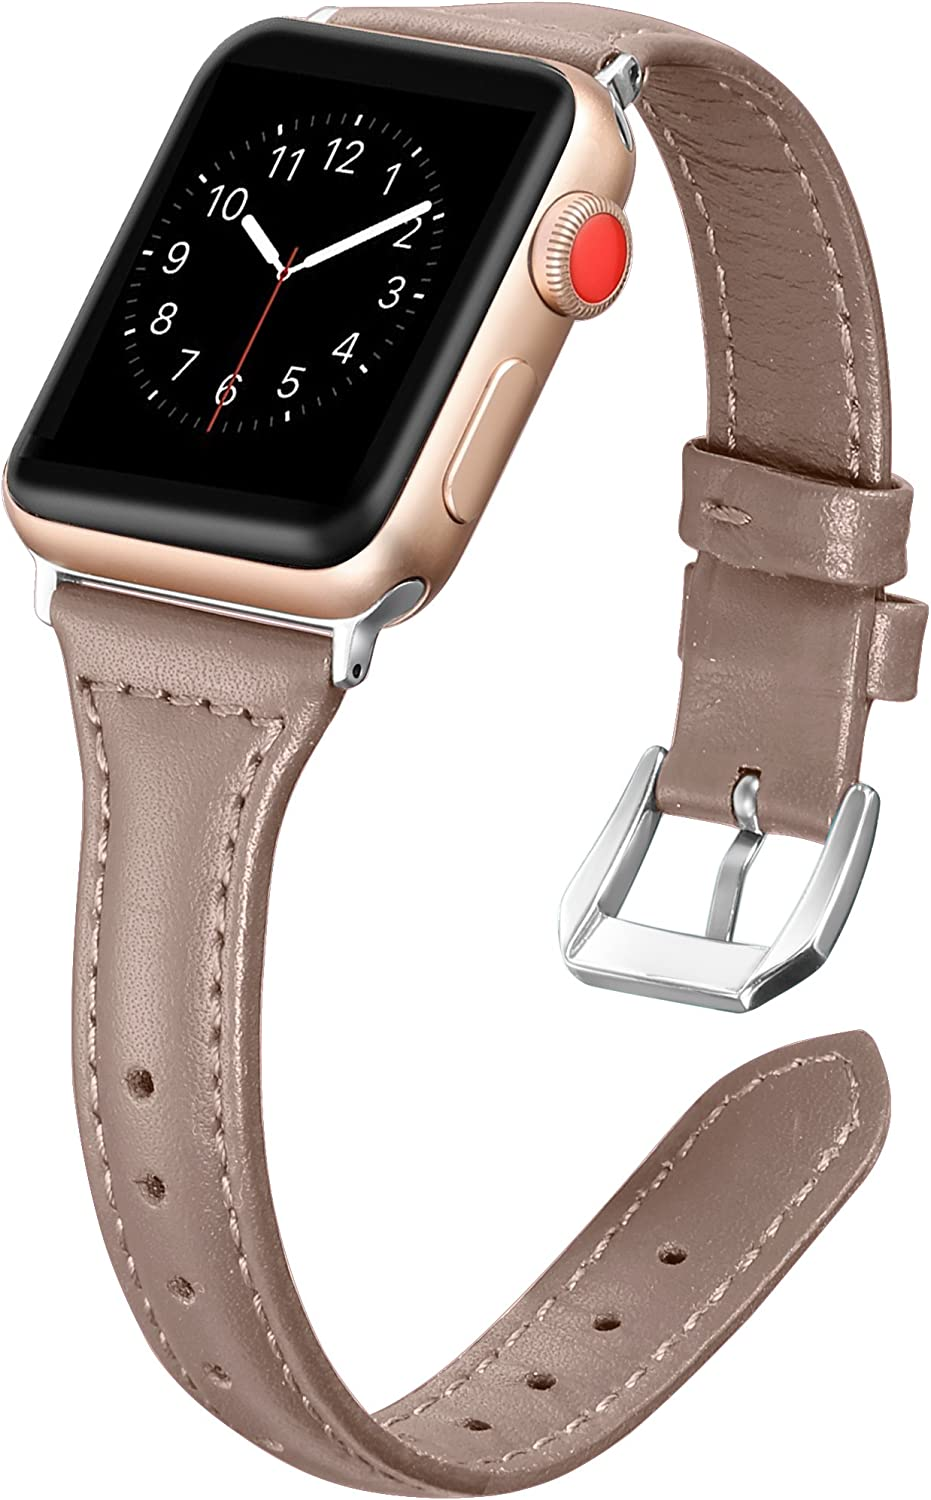 Secbolt Leather Bands Compatible Apple Watch Band 38mm 40mm Iwatch Series 6 5 4 3 2 1 SE Slim Replacement Wristband Strap Stainless Steel Buckle, Caramel Chocolate